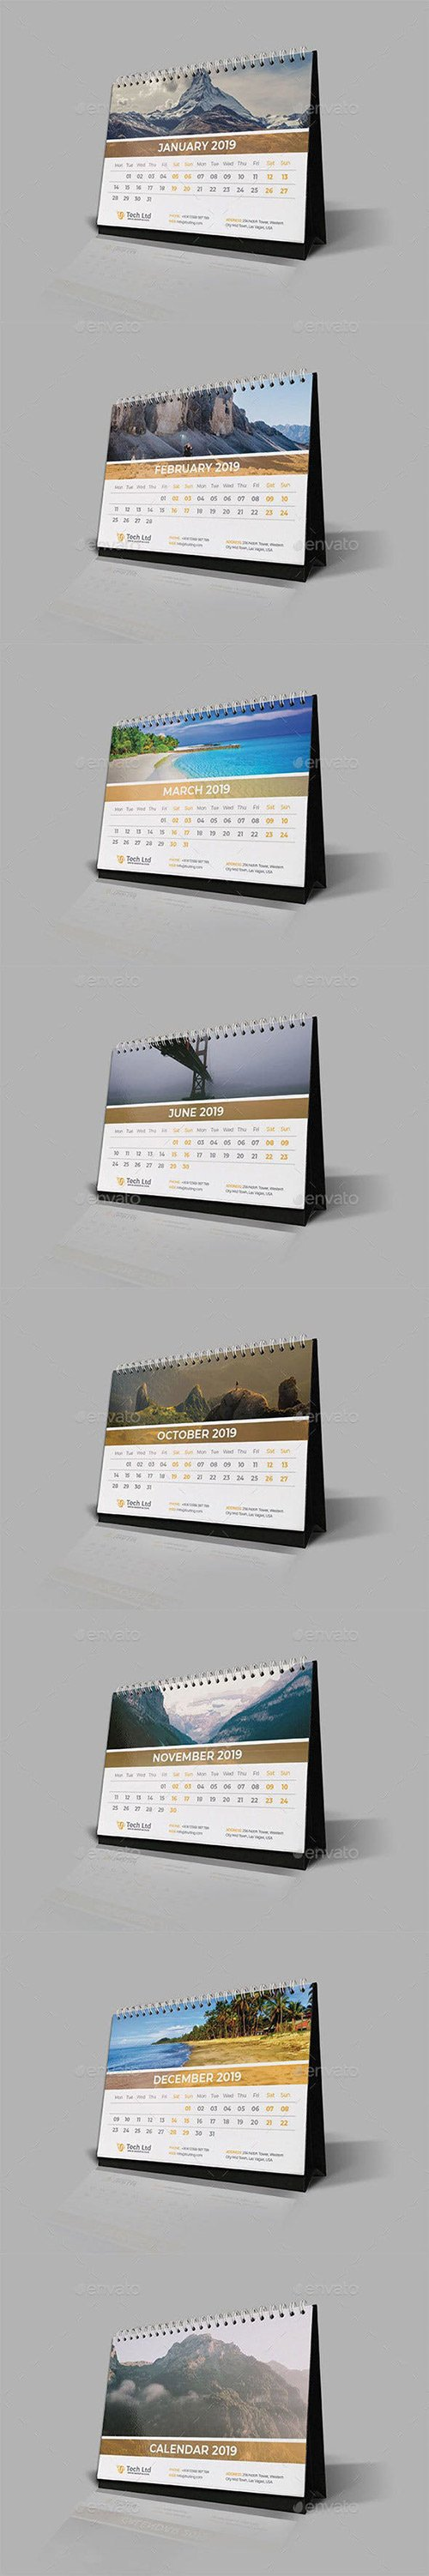 GraphicRiver - Desk Calendar 2019 22718666